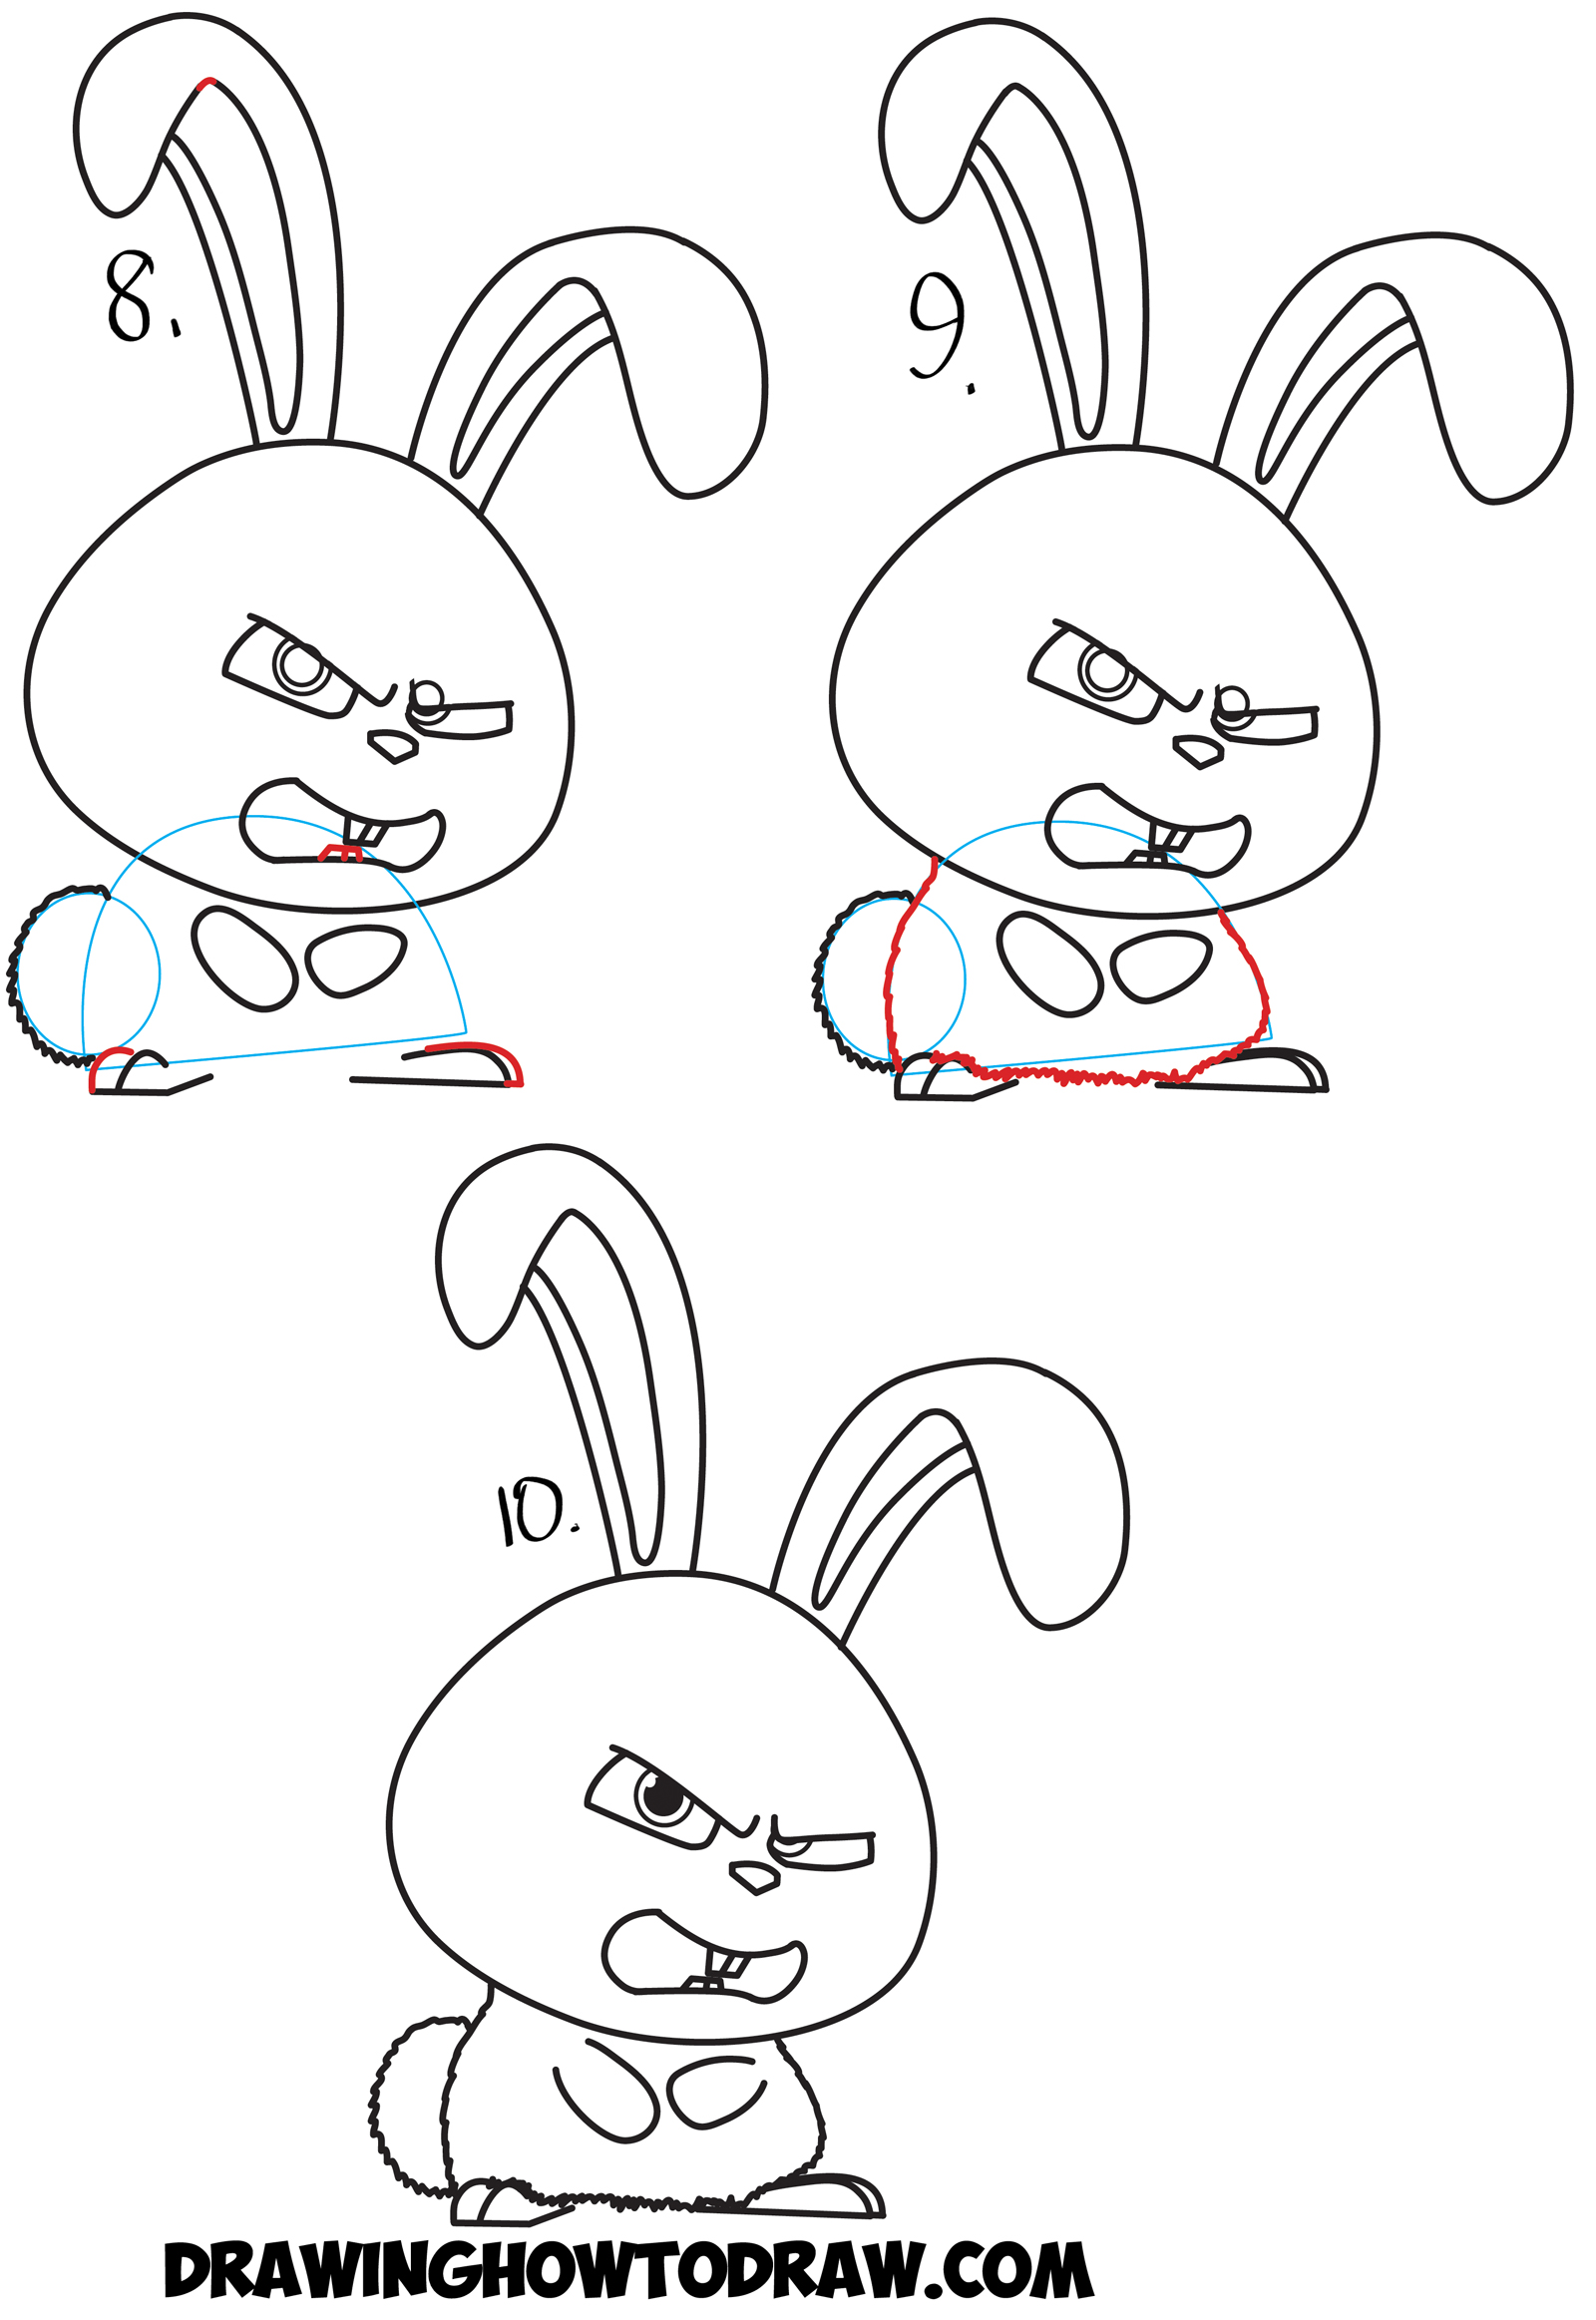 How to Draw Snowball the Bunny Rabbit from The Secret Life of Pets Drawing Tutorial